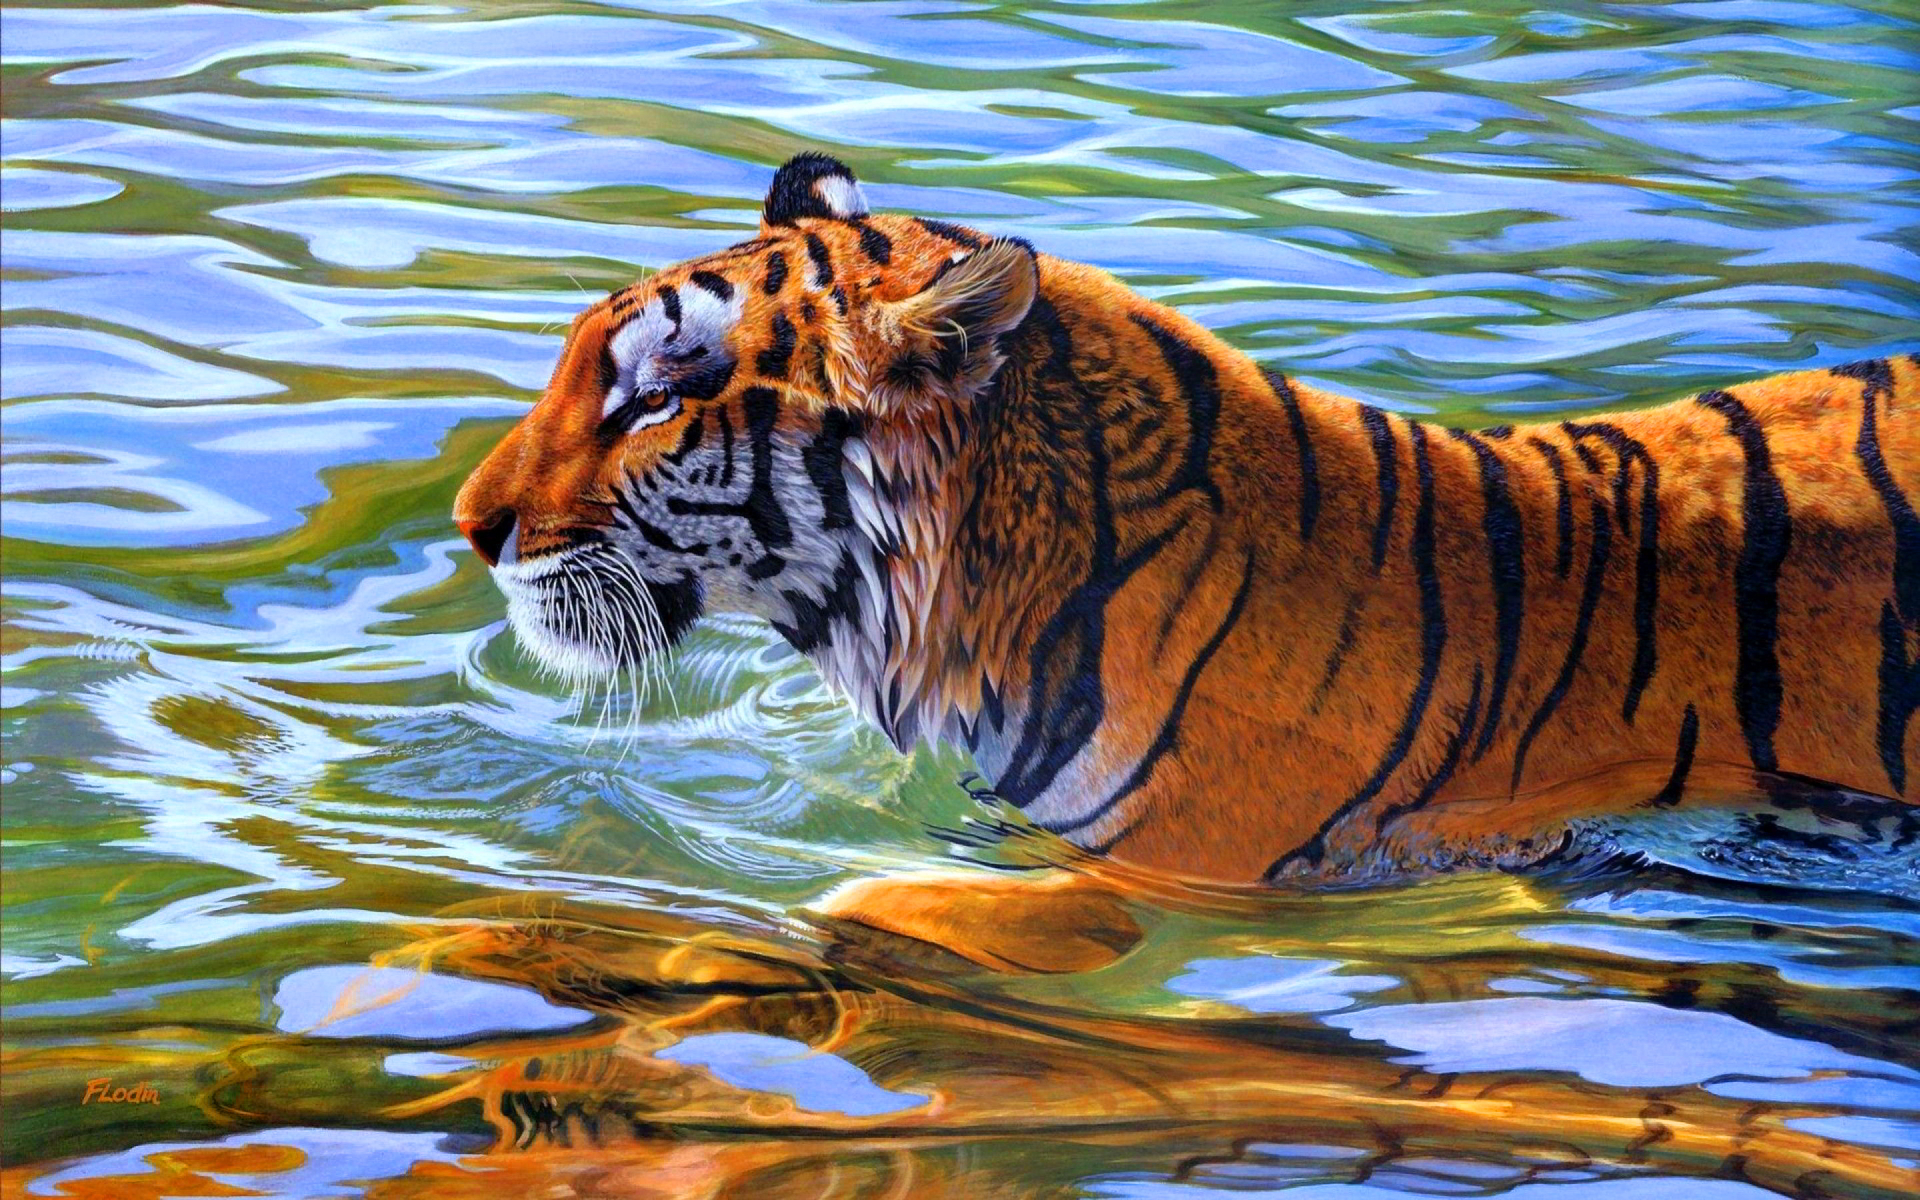 tiger in water 1 wallpaper | 1920x1200 | #14445